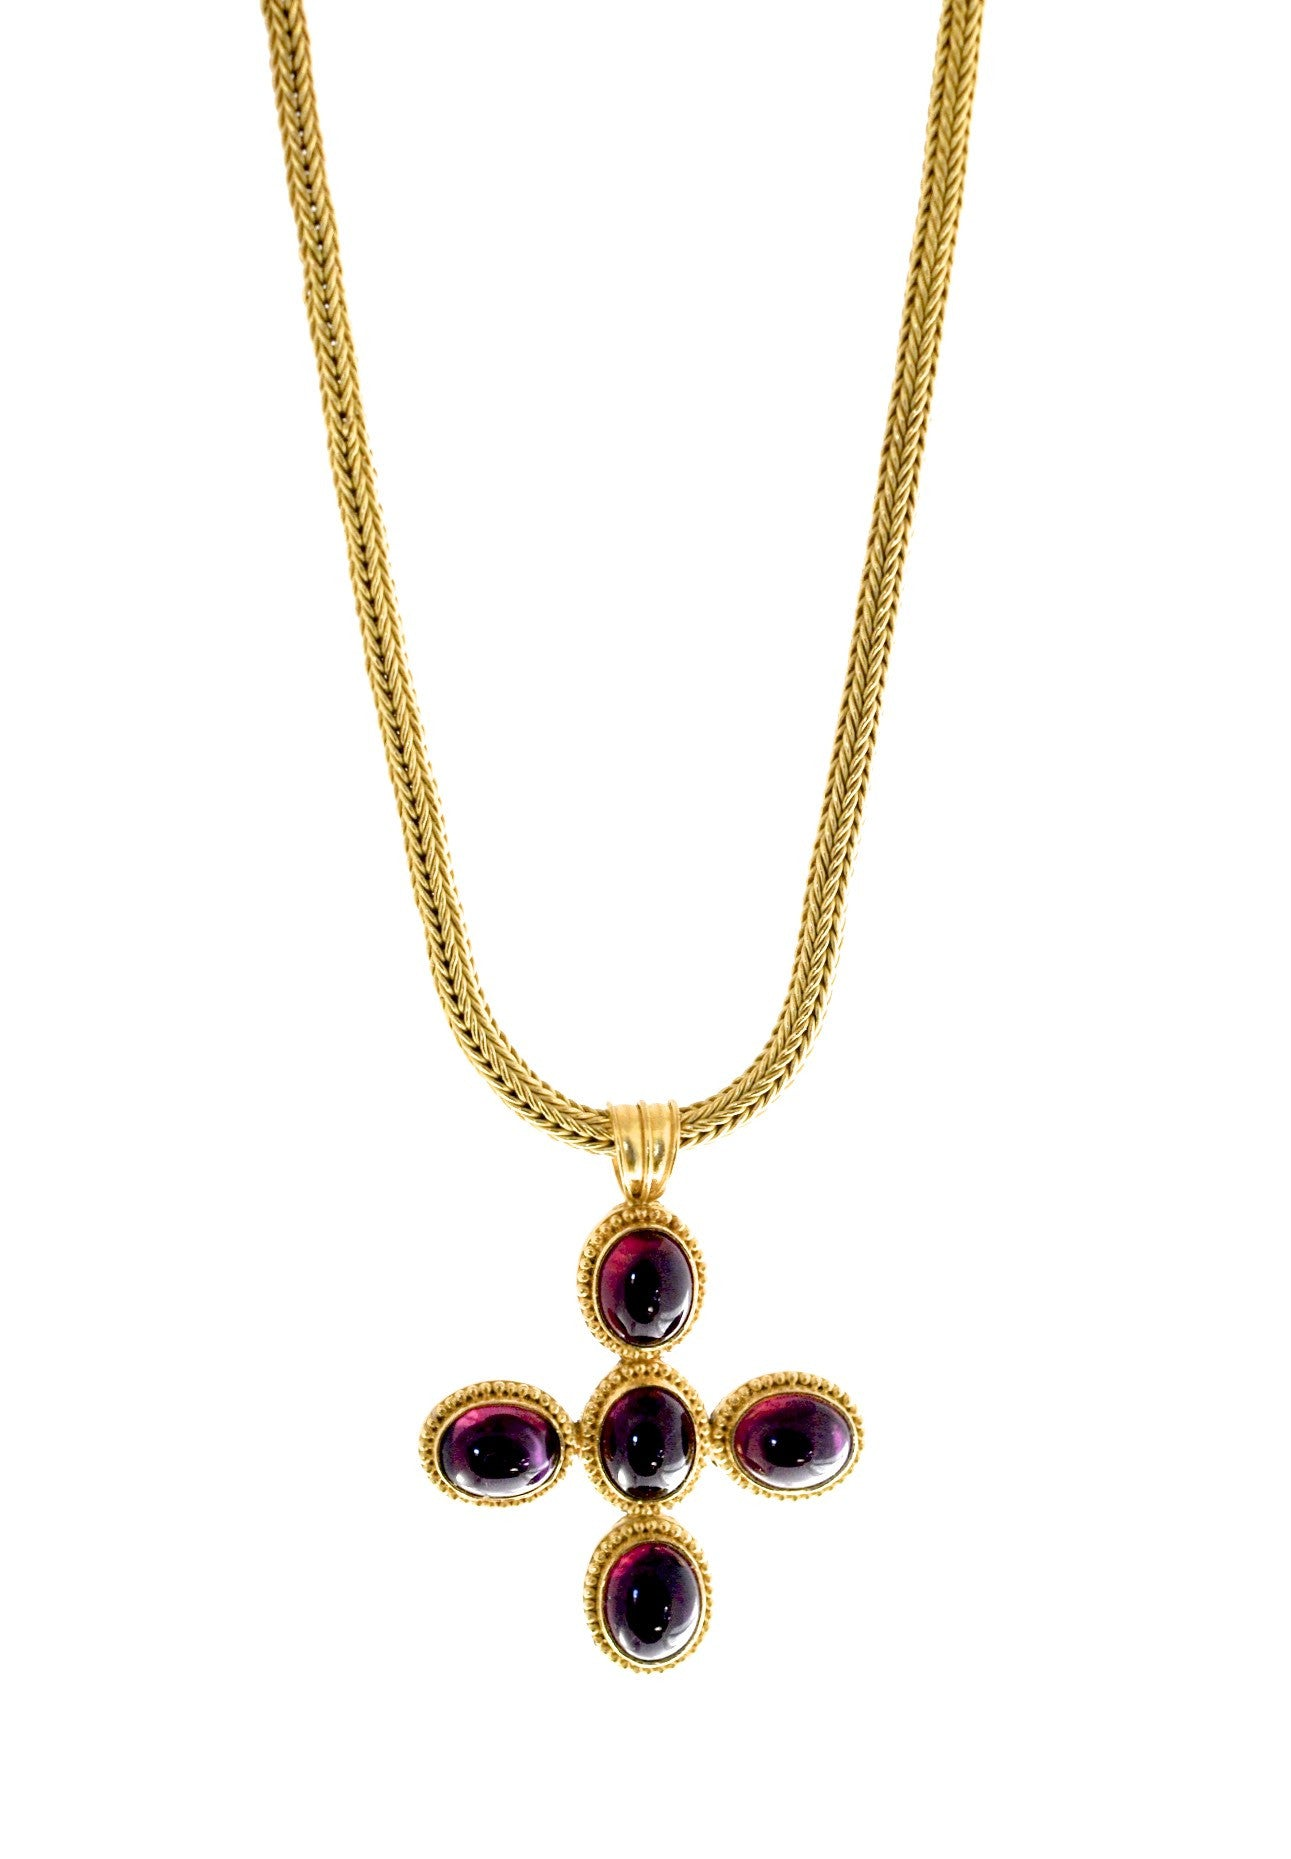 necklace  / gold 22k hand woven chain + Rhodolite cabochons pendant